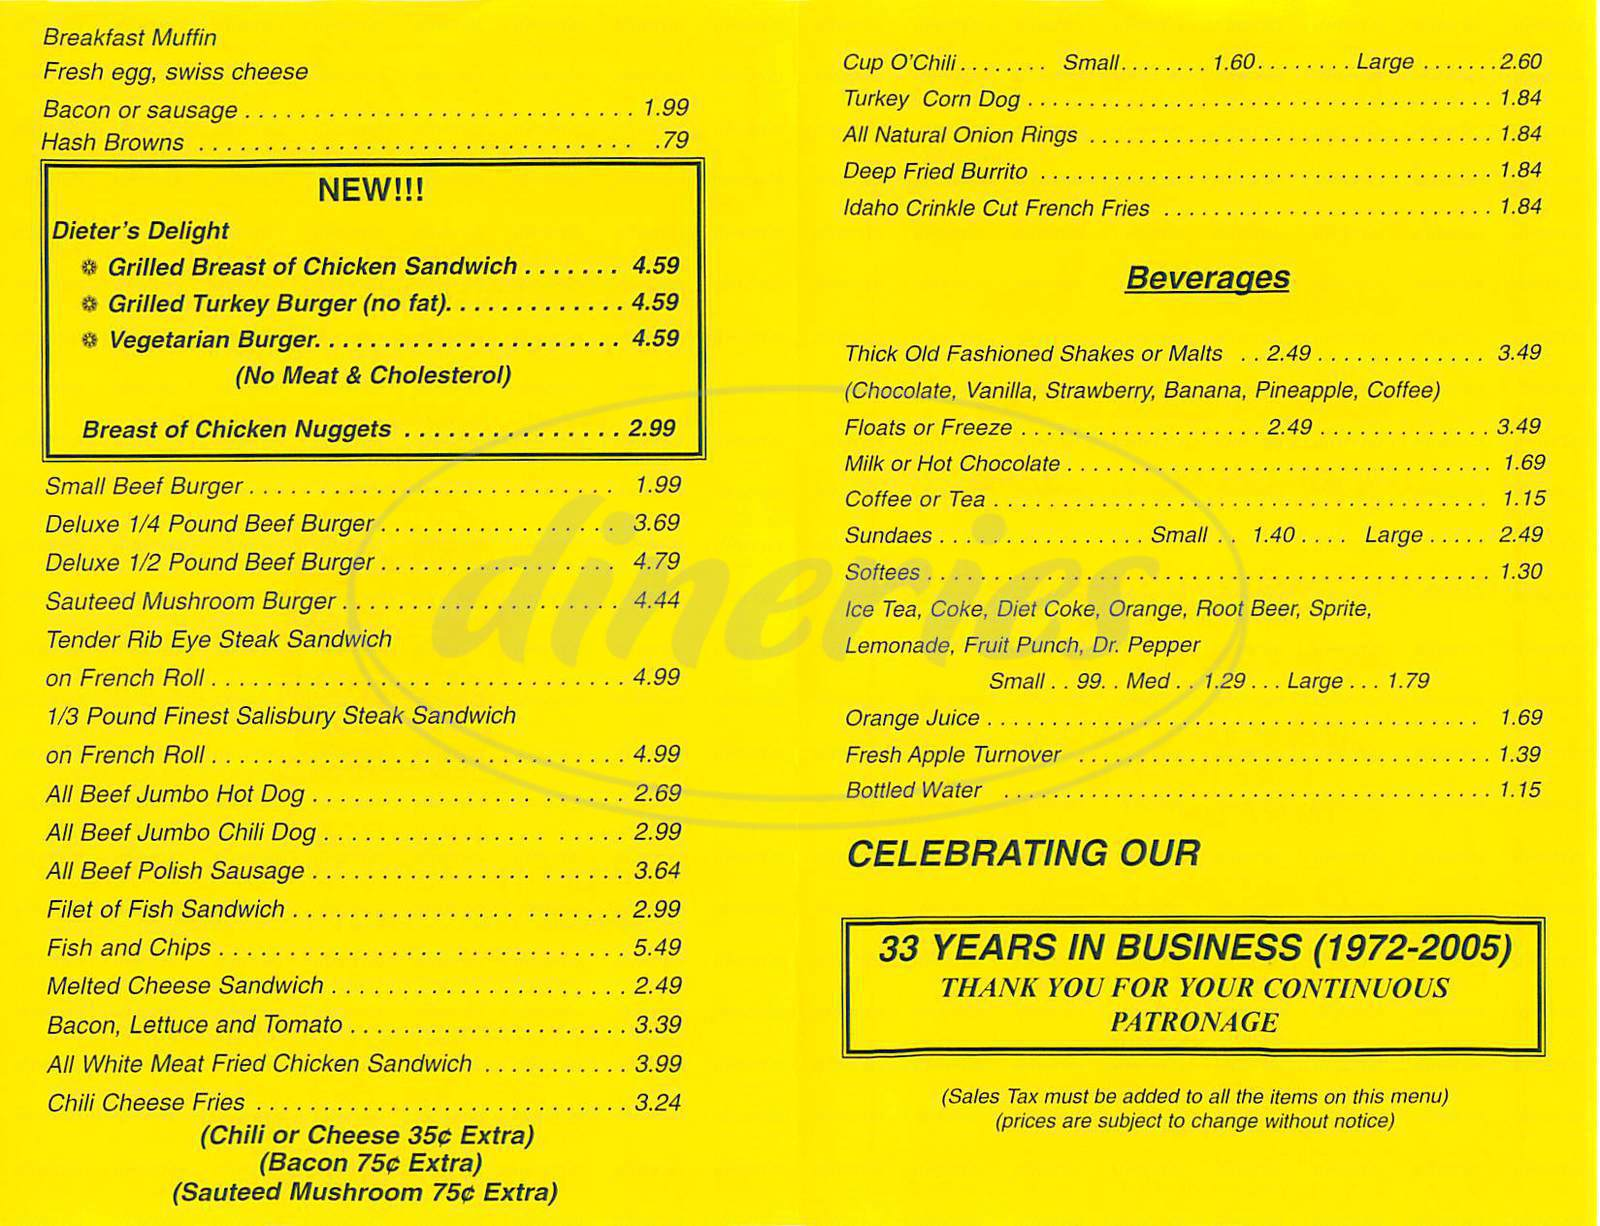 menu for Tony's Cable Car